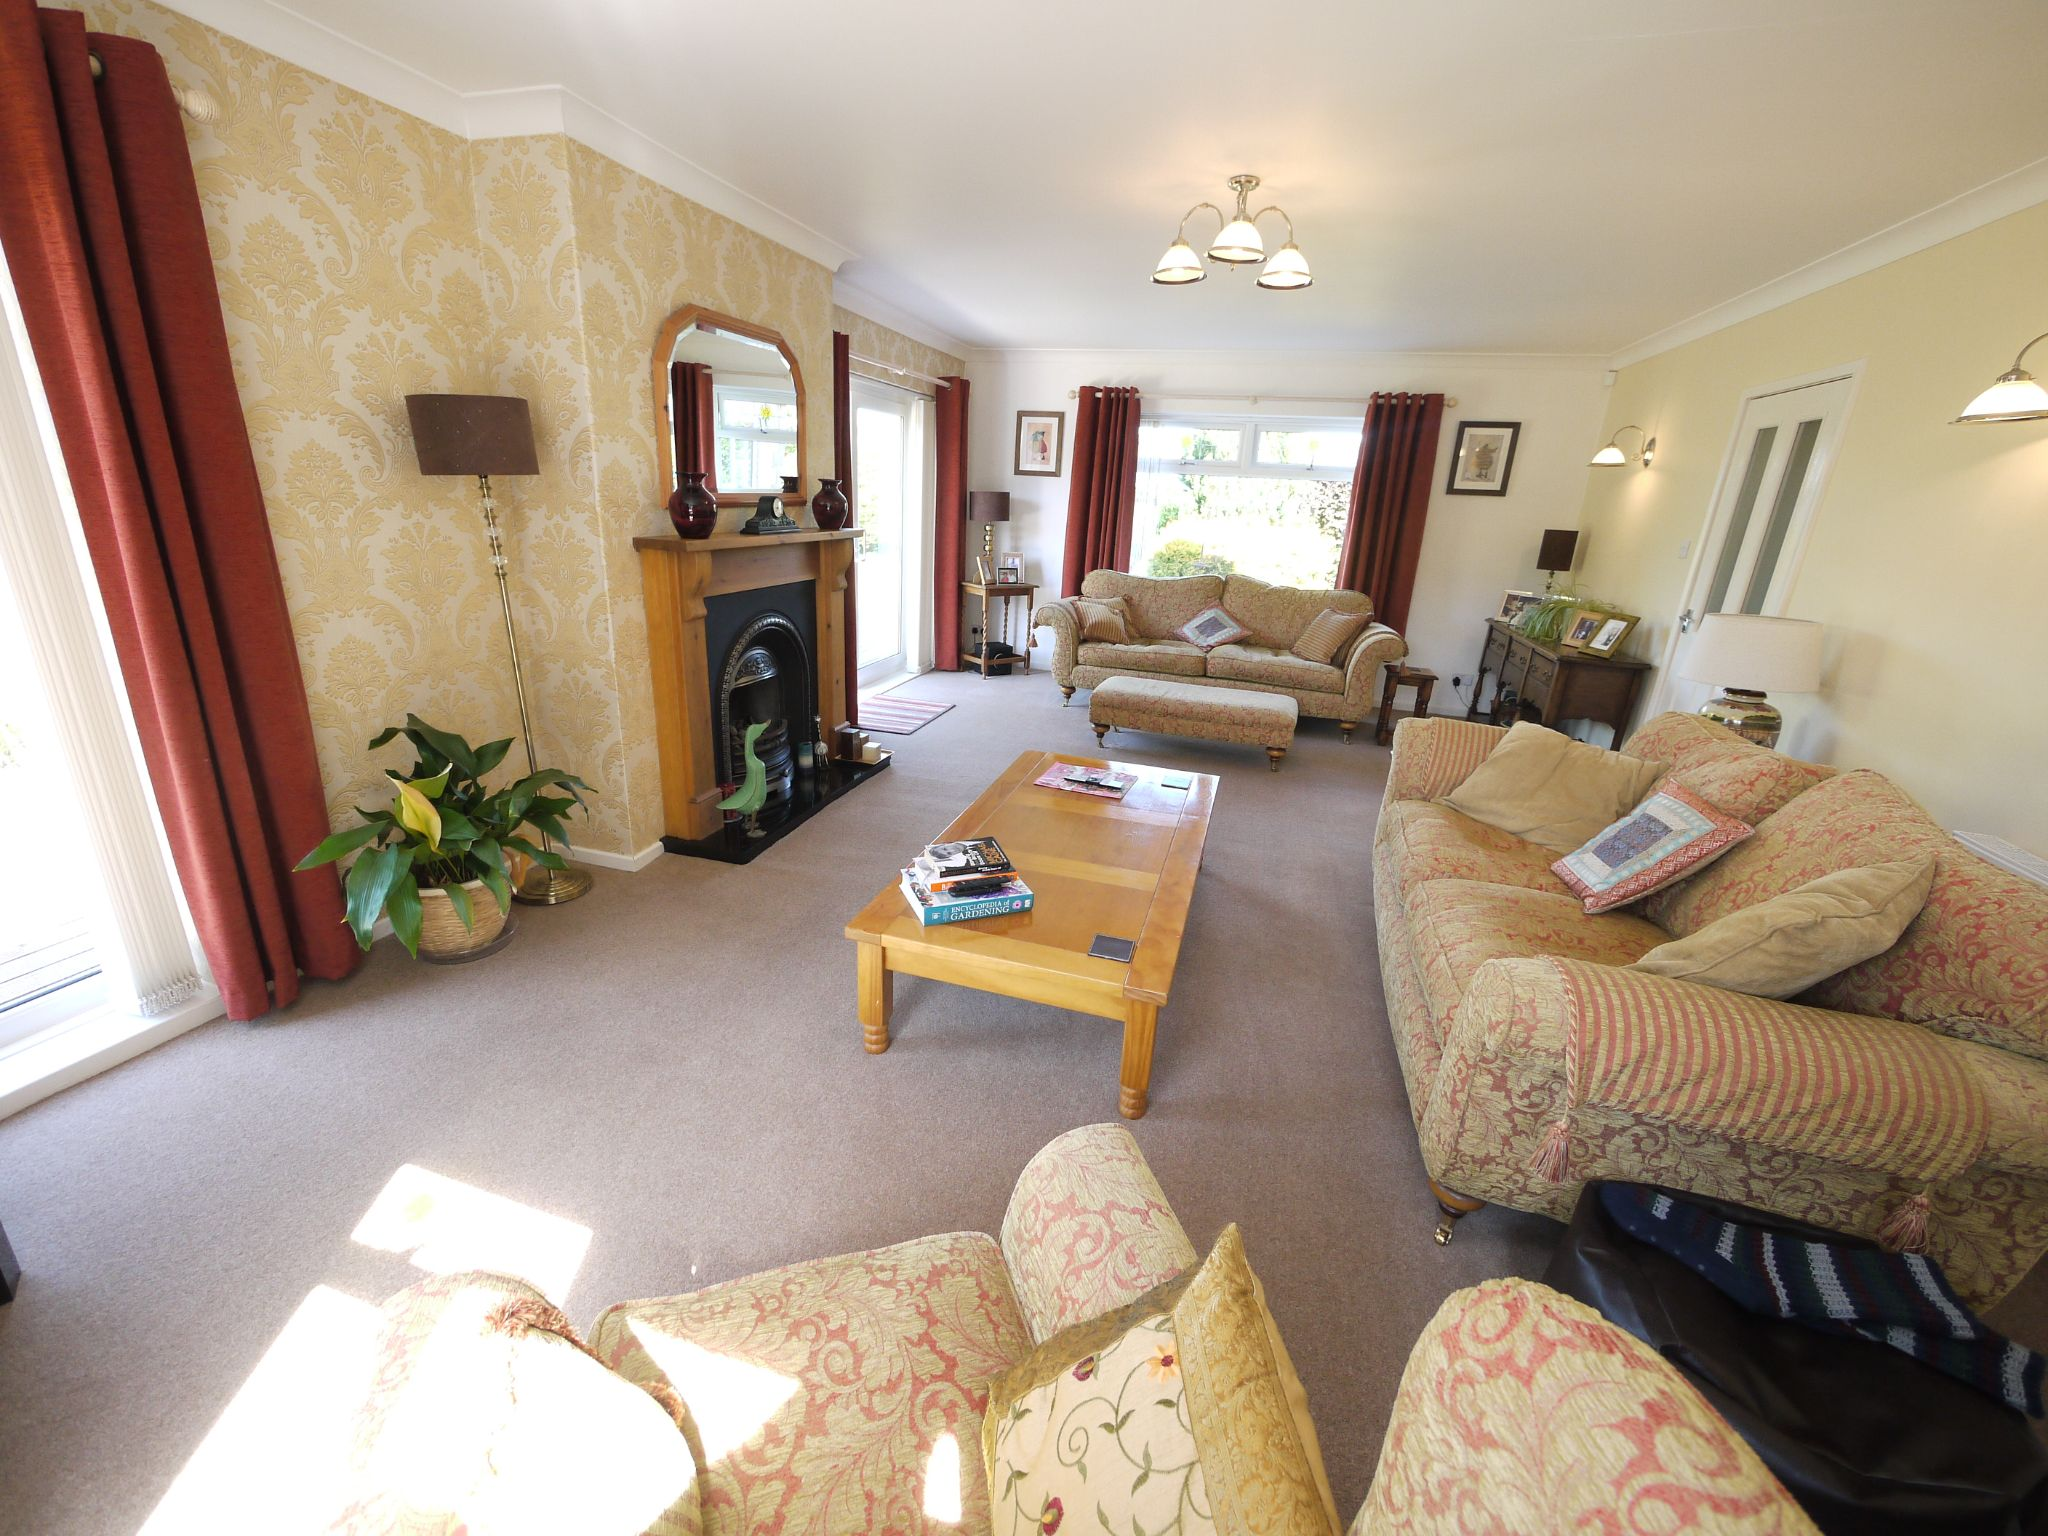 5 bedroom detached house SSTC in Brighouse - Lounge 2.